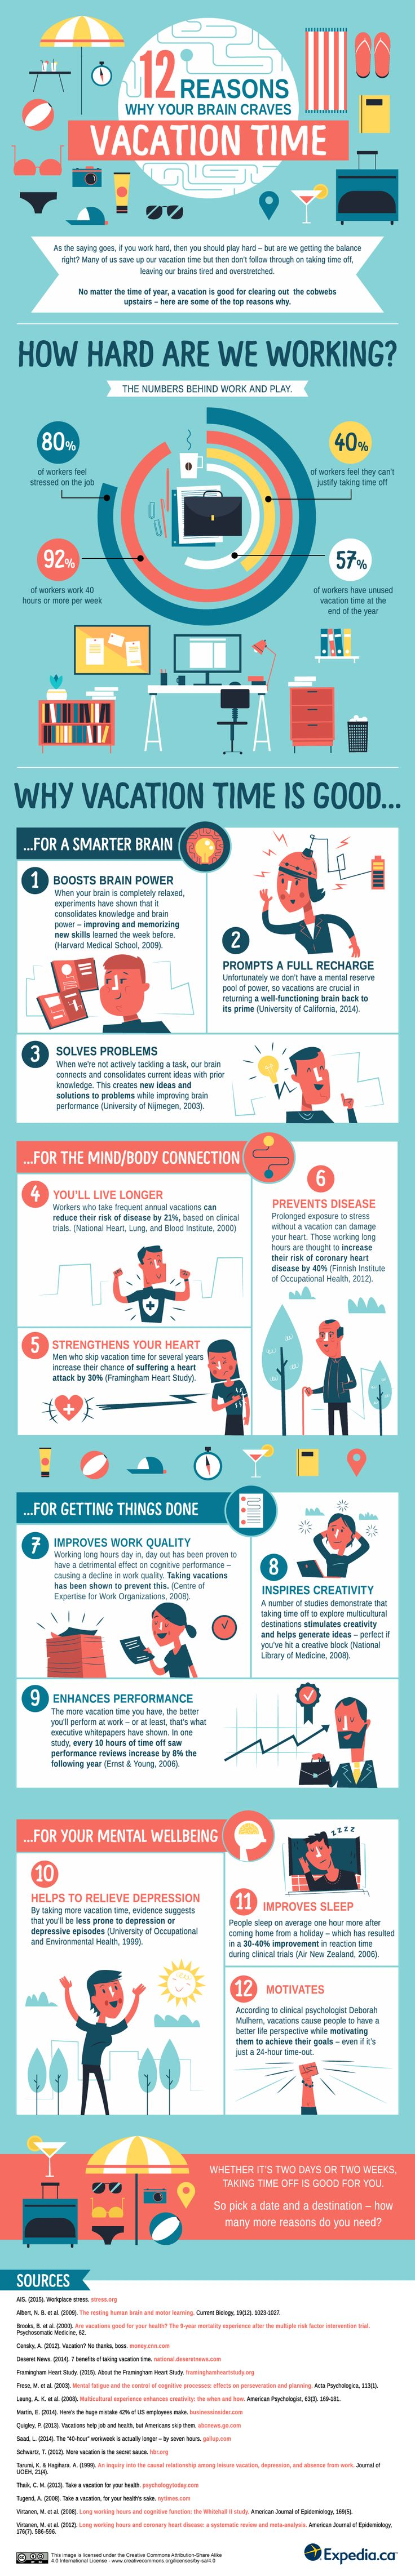 52 best infographic images on pinterest infographic tools and 12 reasons why your brain craves vacation infographic fandeluxe Image collections